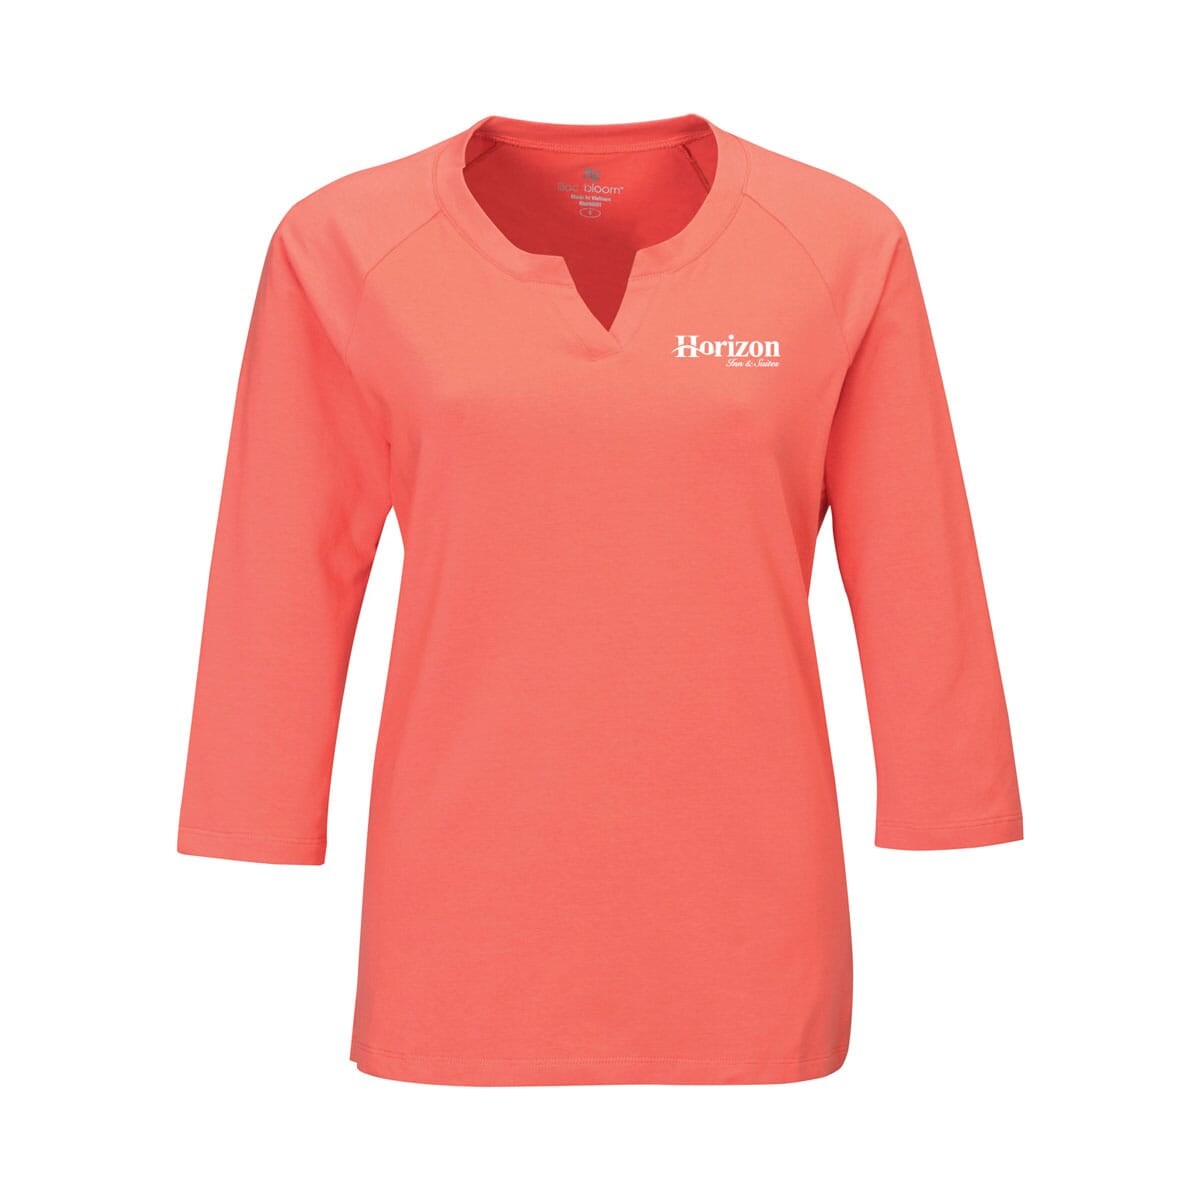 Womens Split-Neck Knit Shirt